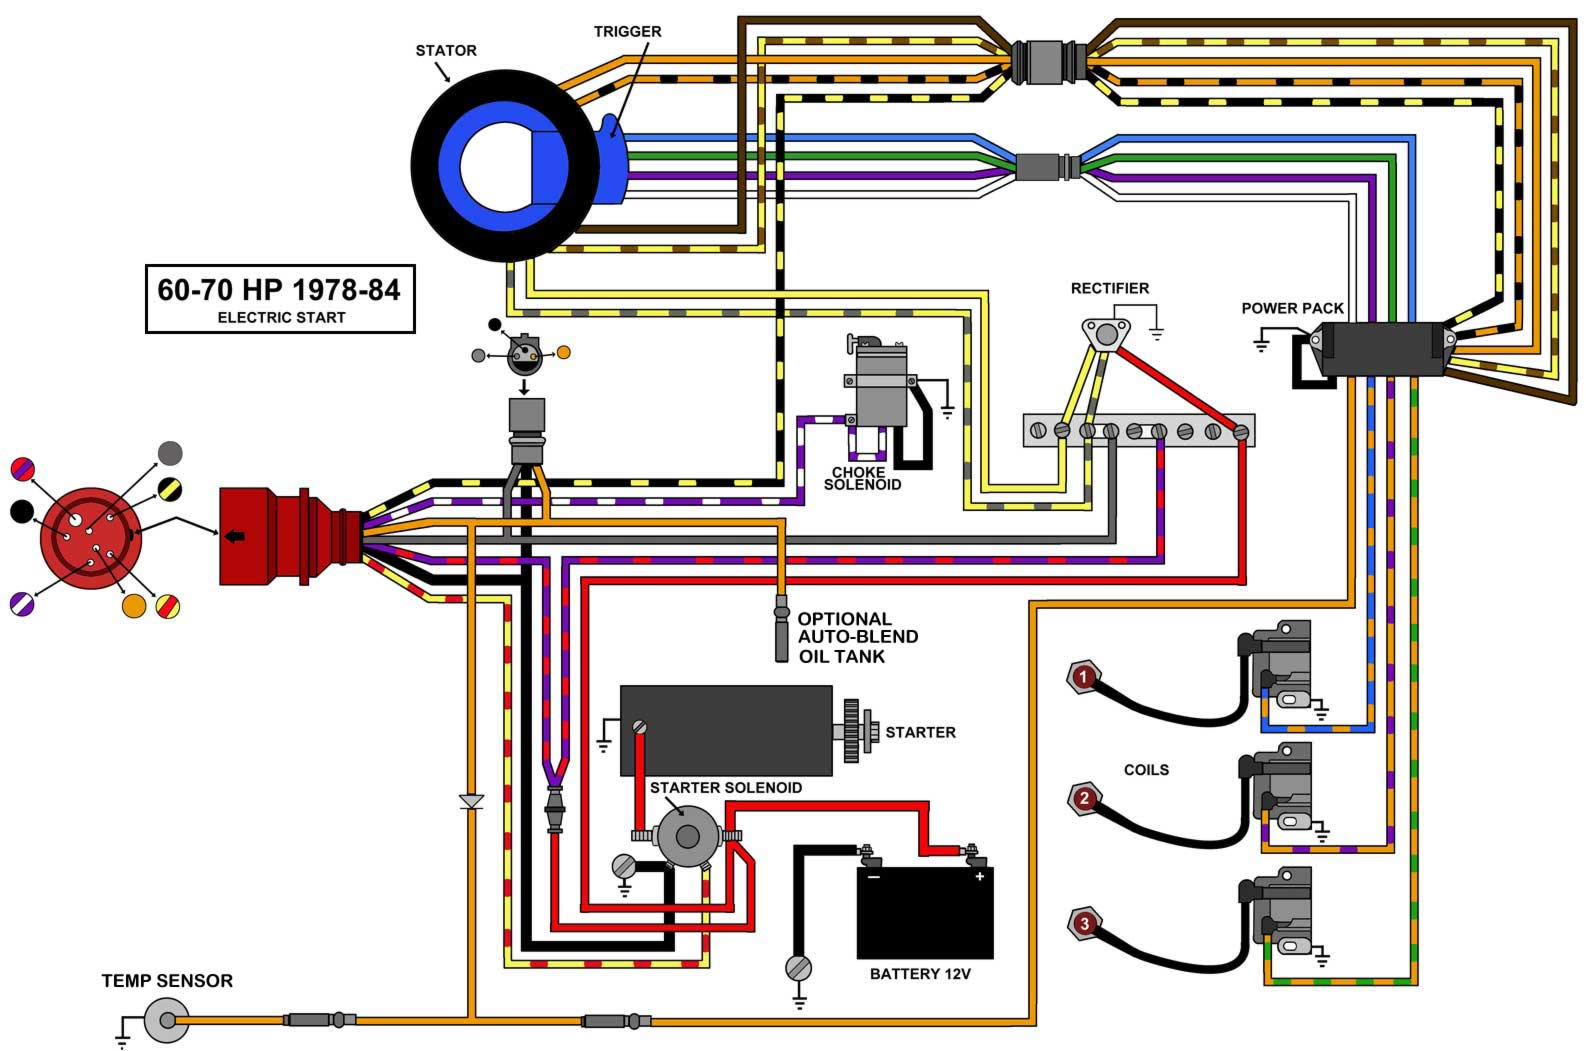 Johnson 60 Hp Wiring Diagram Third Level Marine Solenoid Evinrude Outboard Diagrams Mastertech Jvc